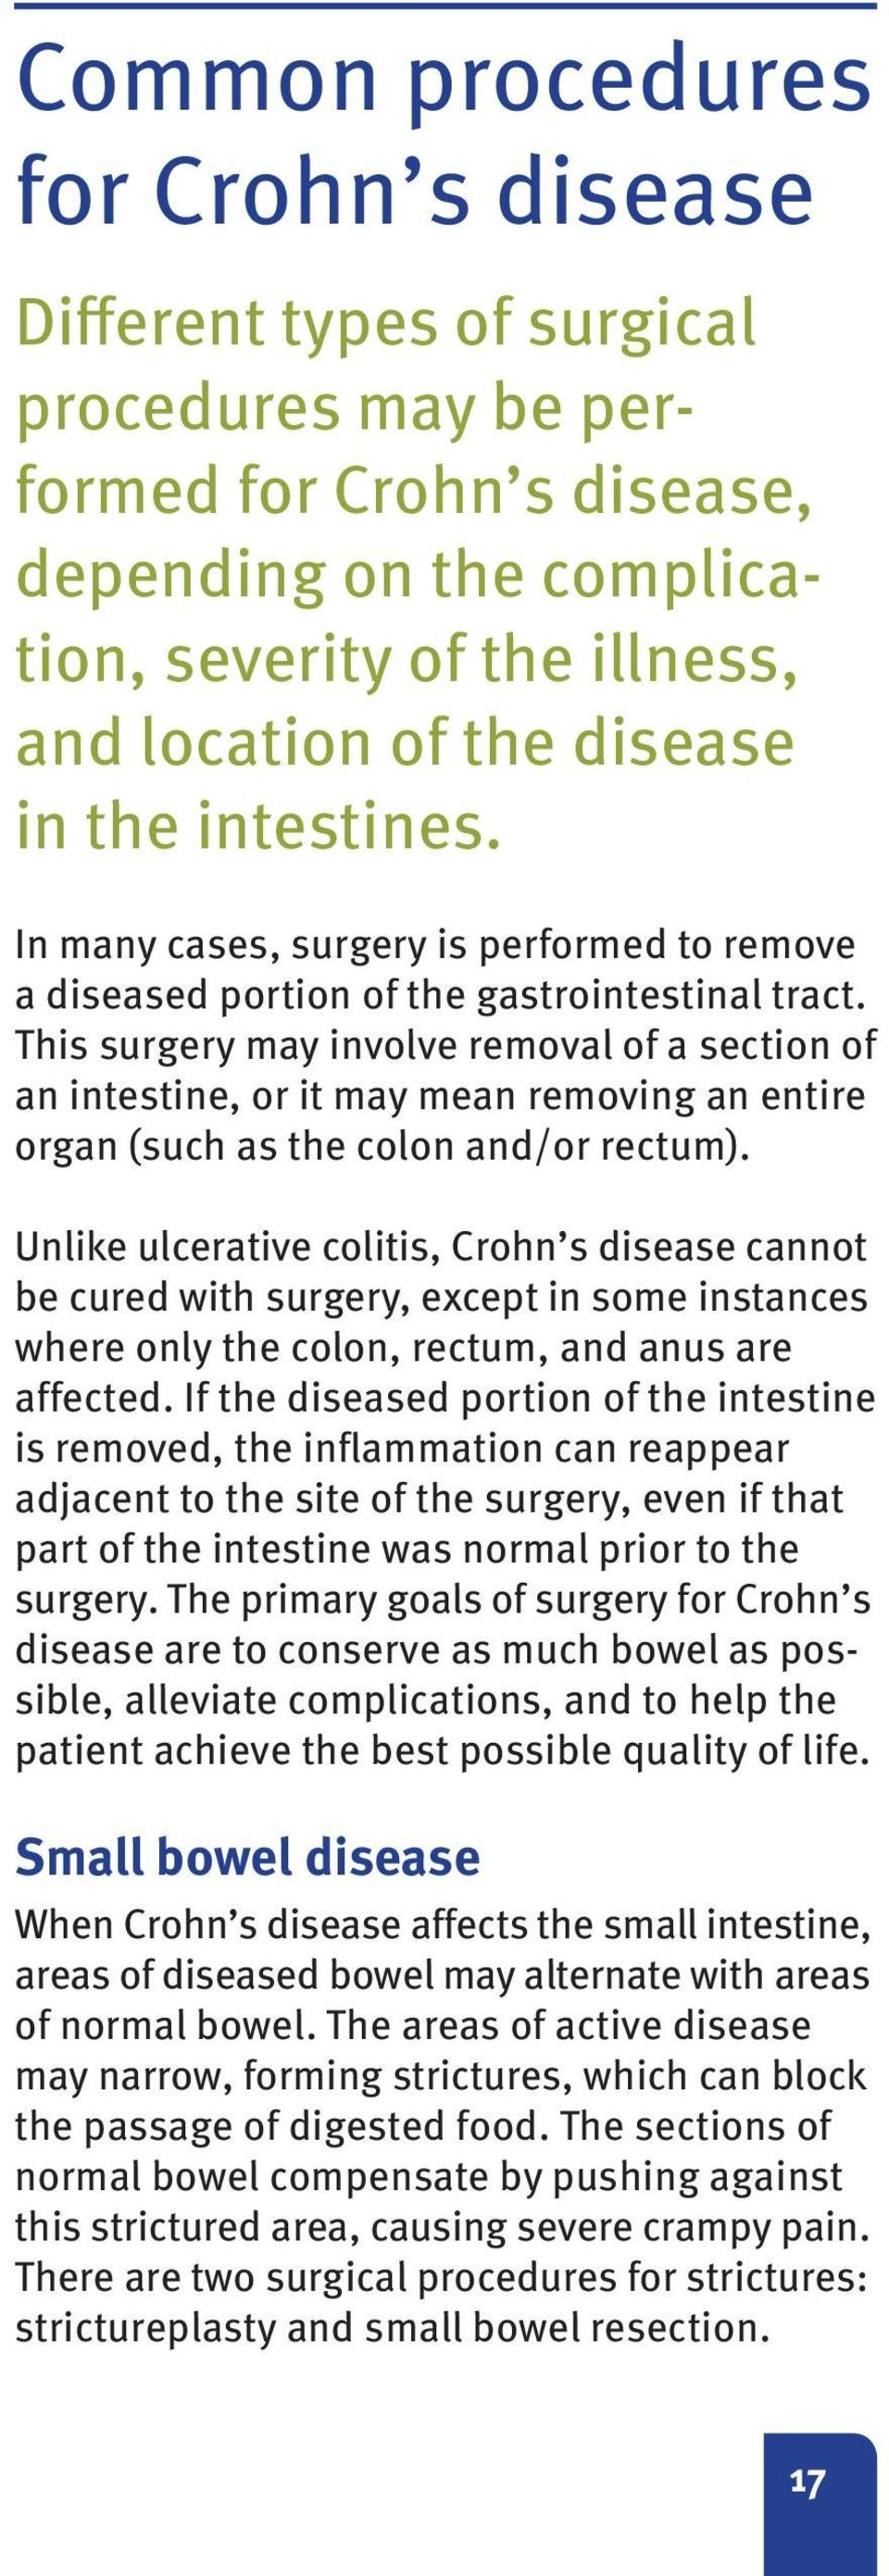 This surgery may involve removal of a section of an intestine, or it may mean removing an entire organ (such as the colon and/or rectum).